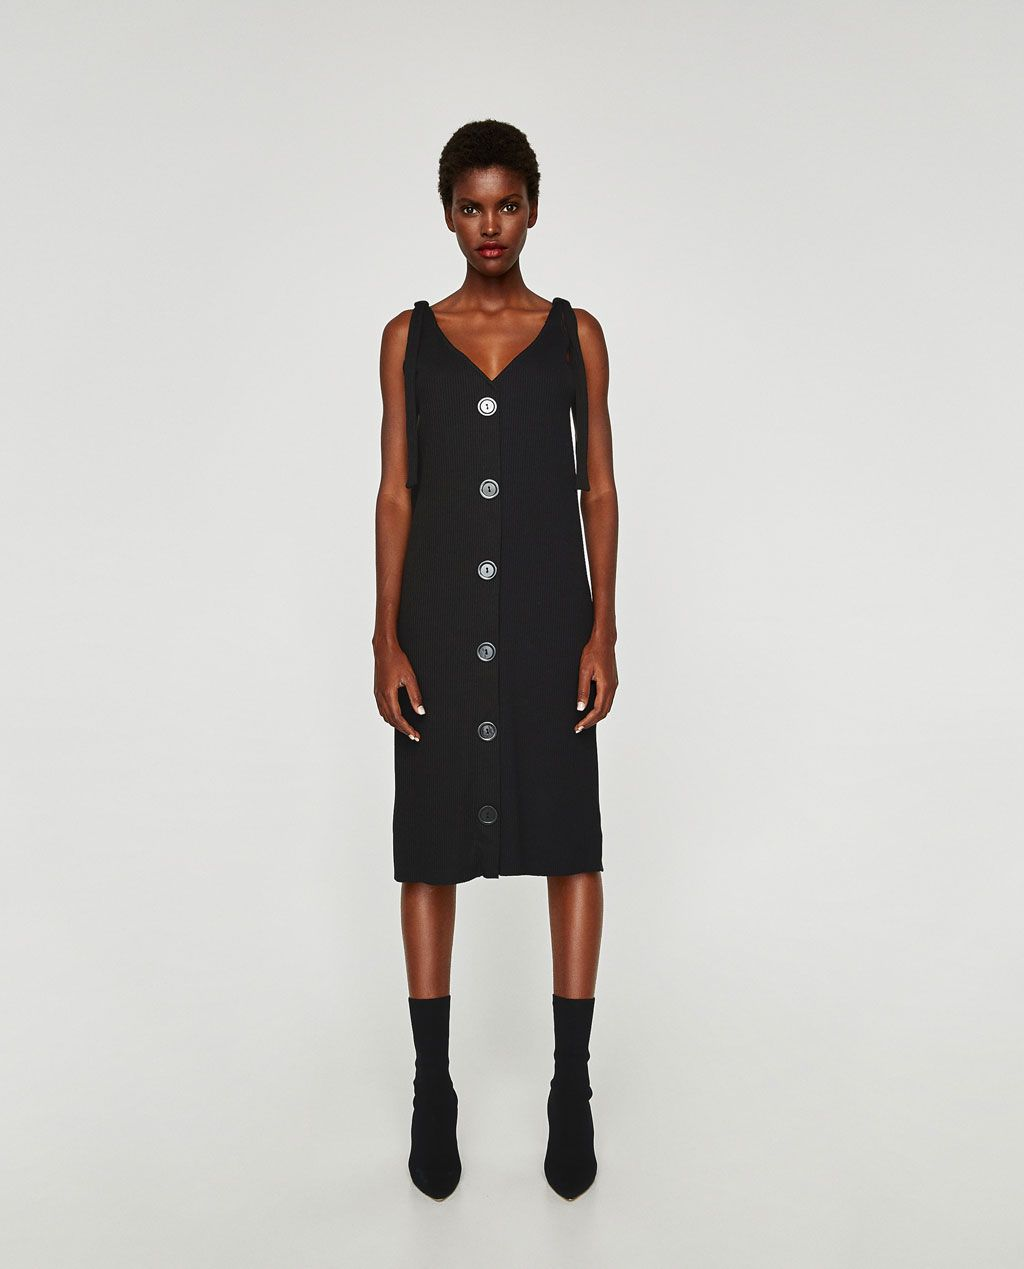 e7eb4022e38 Image 1 of RIBBED DRESS WITH THIN STRAPS from Zara